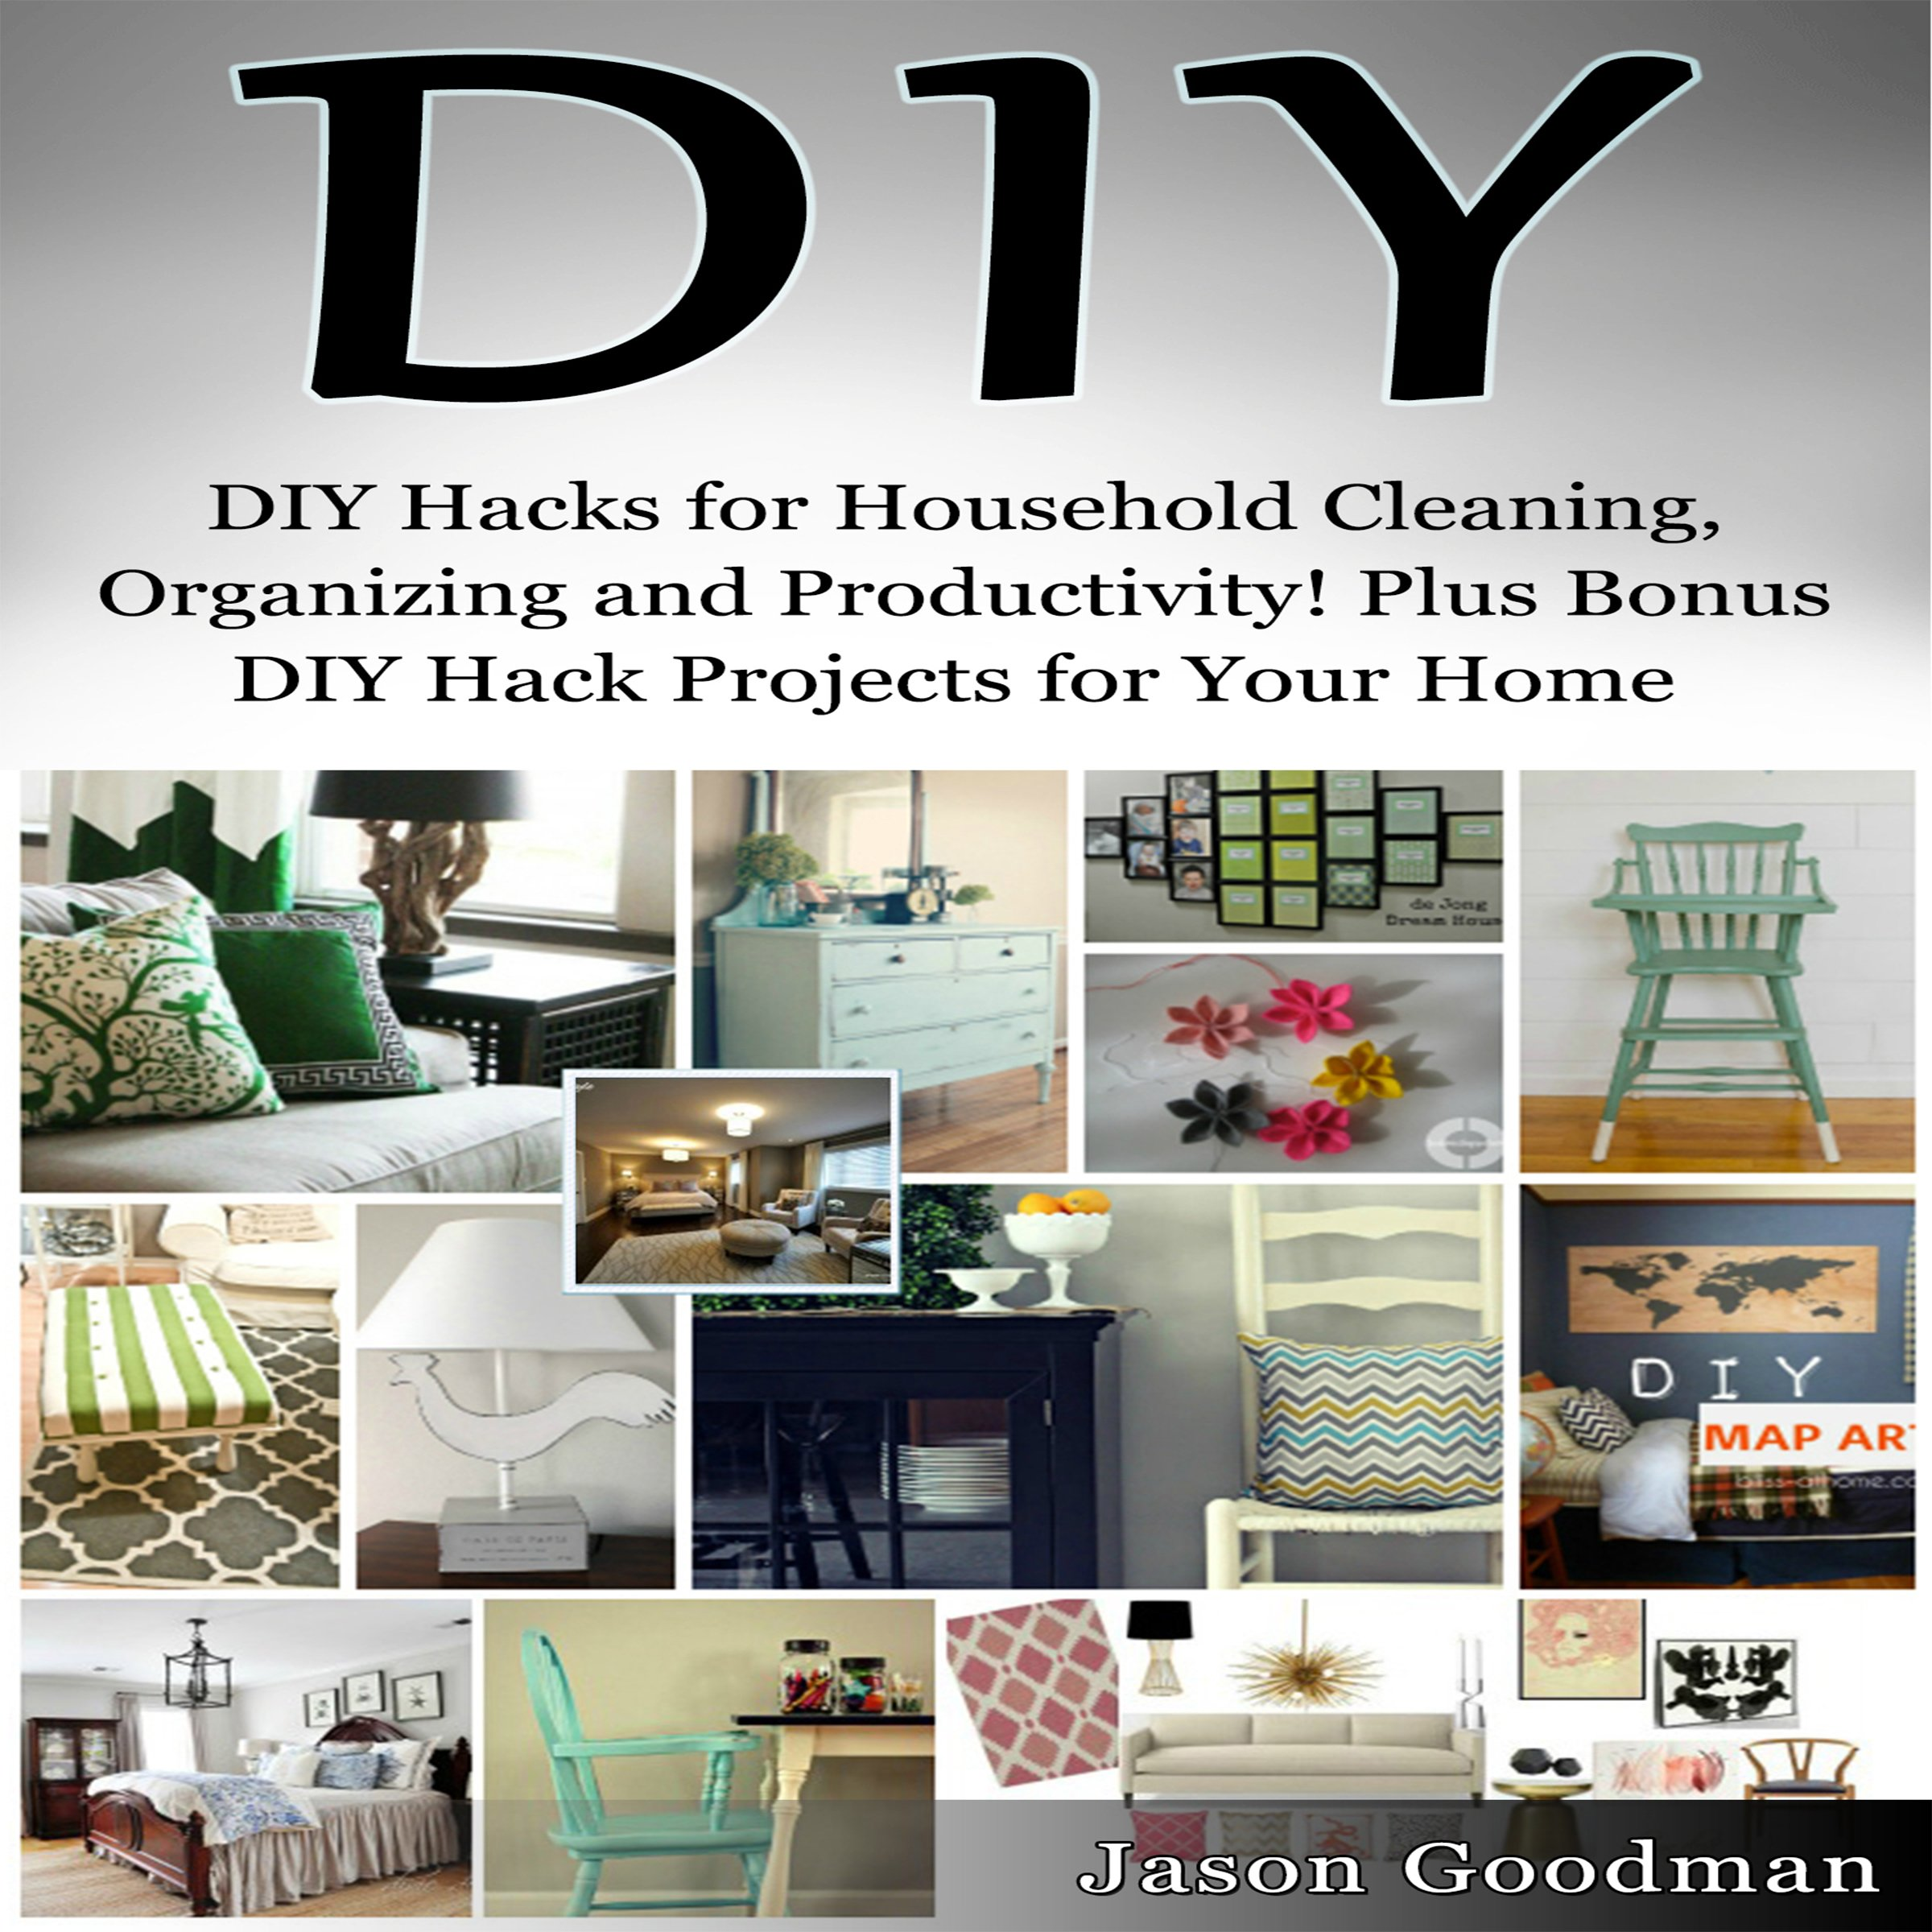 DIY Hacks For Household Cleaning Organizing And Productivity  Plus Bonus DIY Hack Projects For Your Home